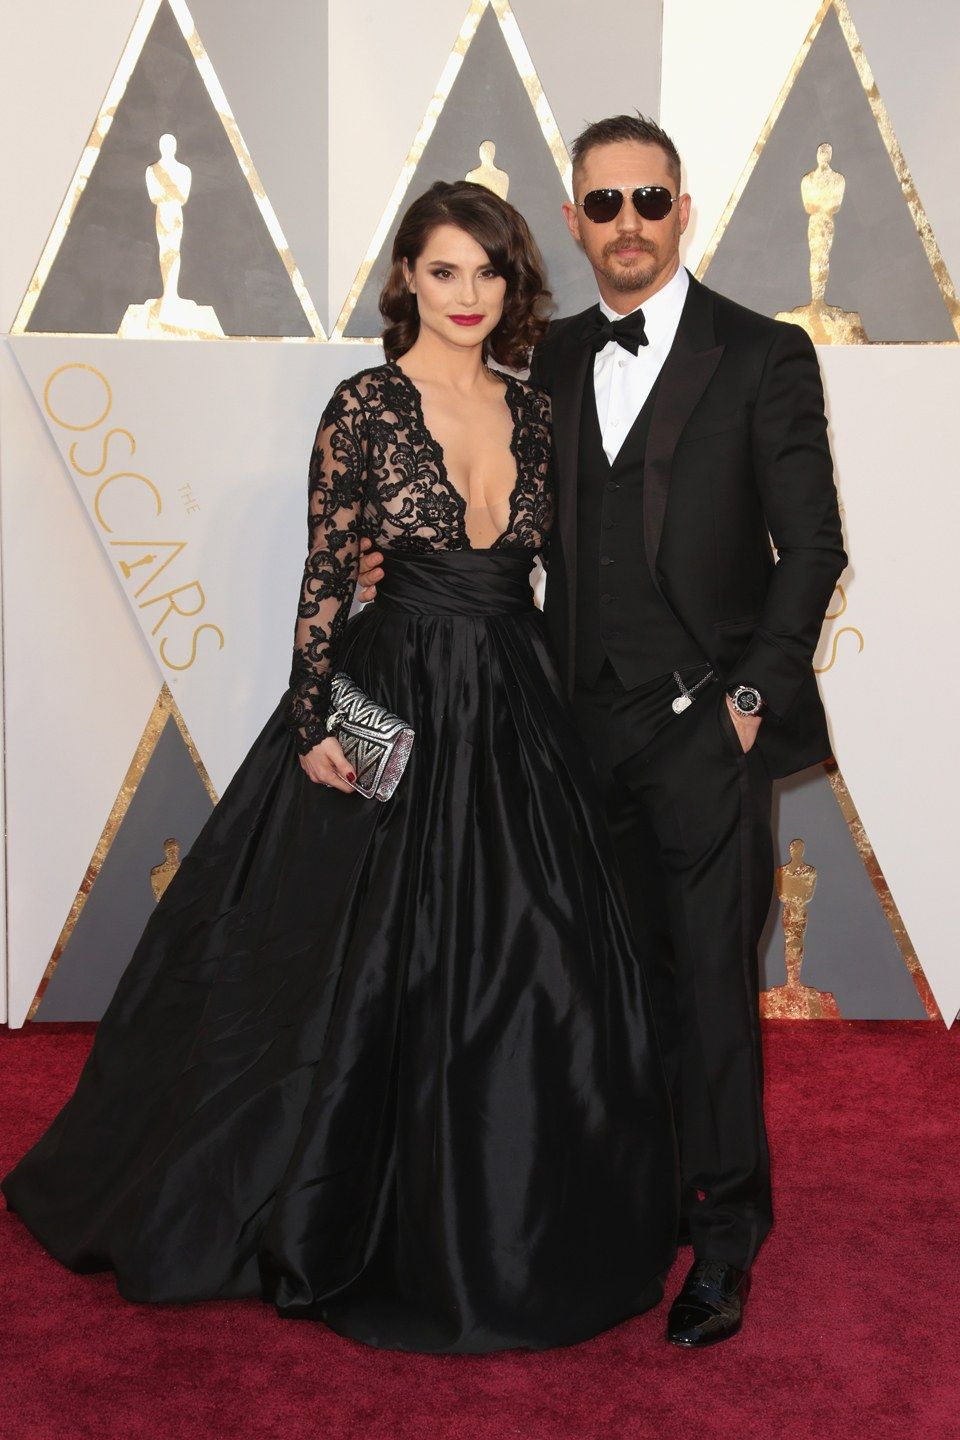 b05e2aad7a8 Oscars 2016 Red Carpet Fashion  Looks from Hollywood s Biggest Night ...